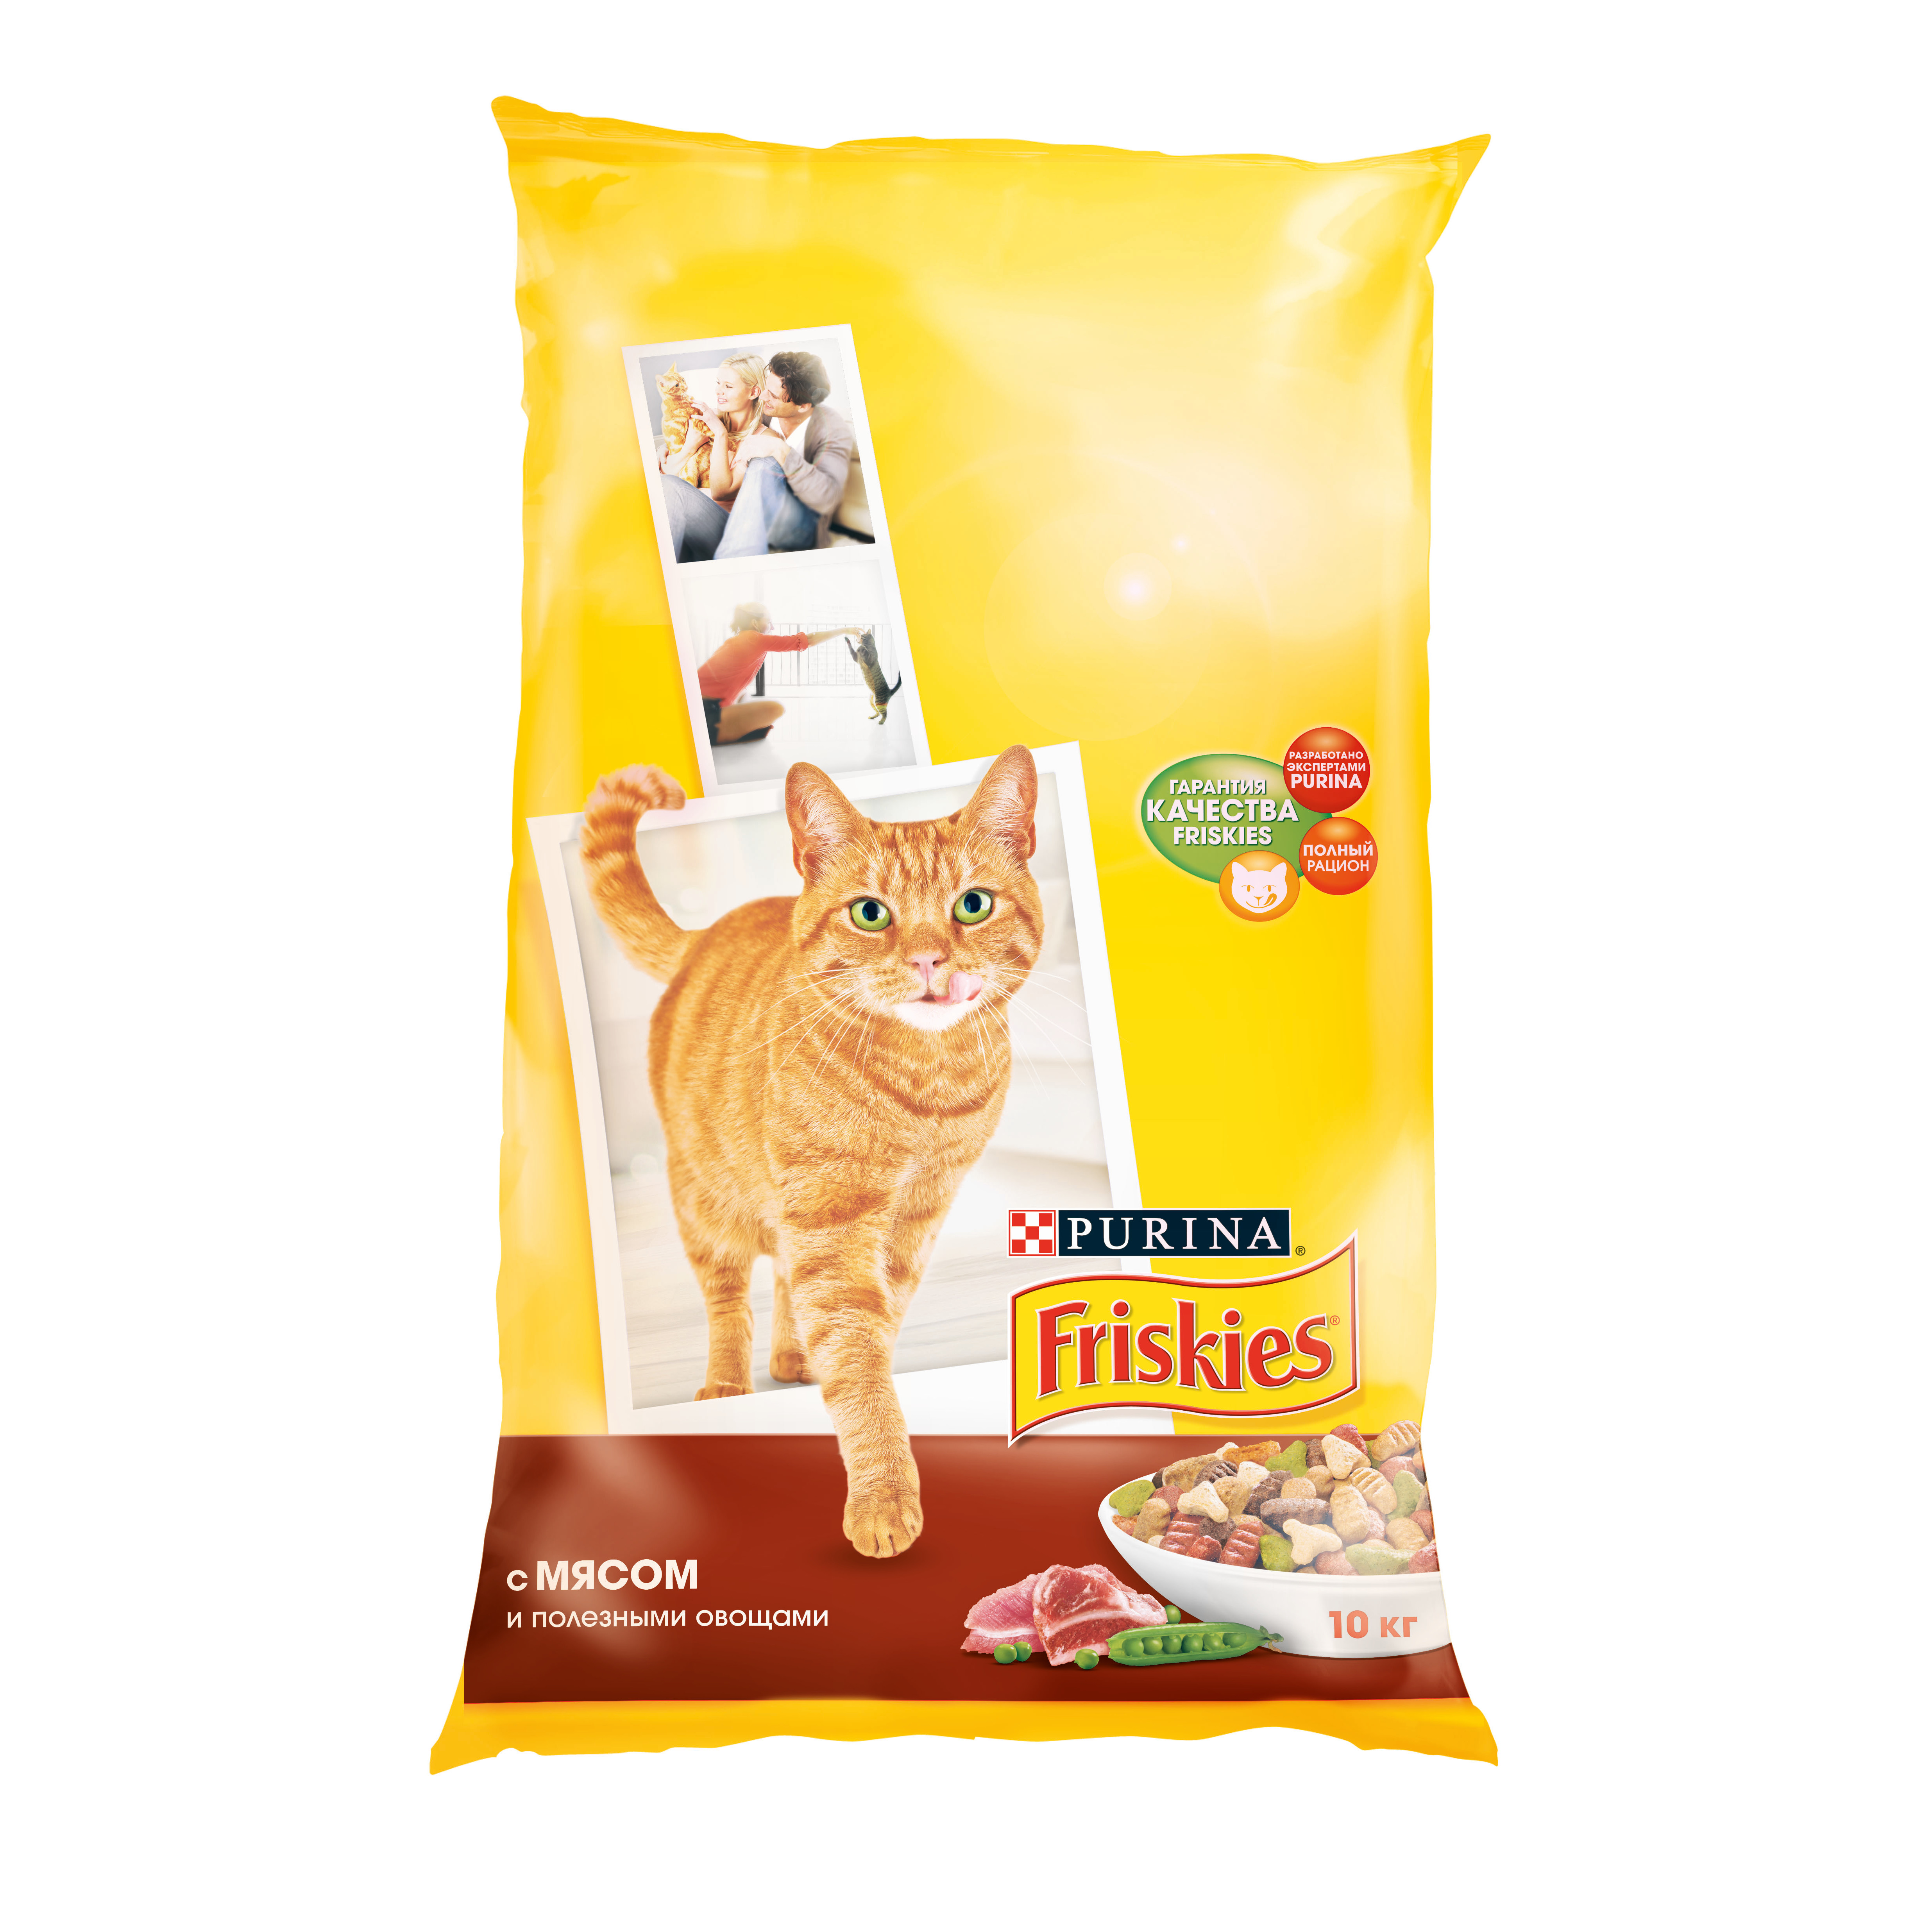 все цены на Friskies dry food for adult cats with meat and healthy vegetables, Package, 10 kg онлайн